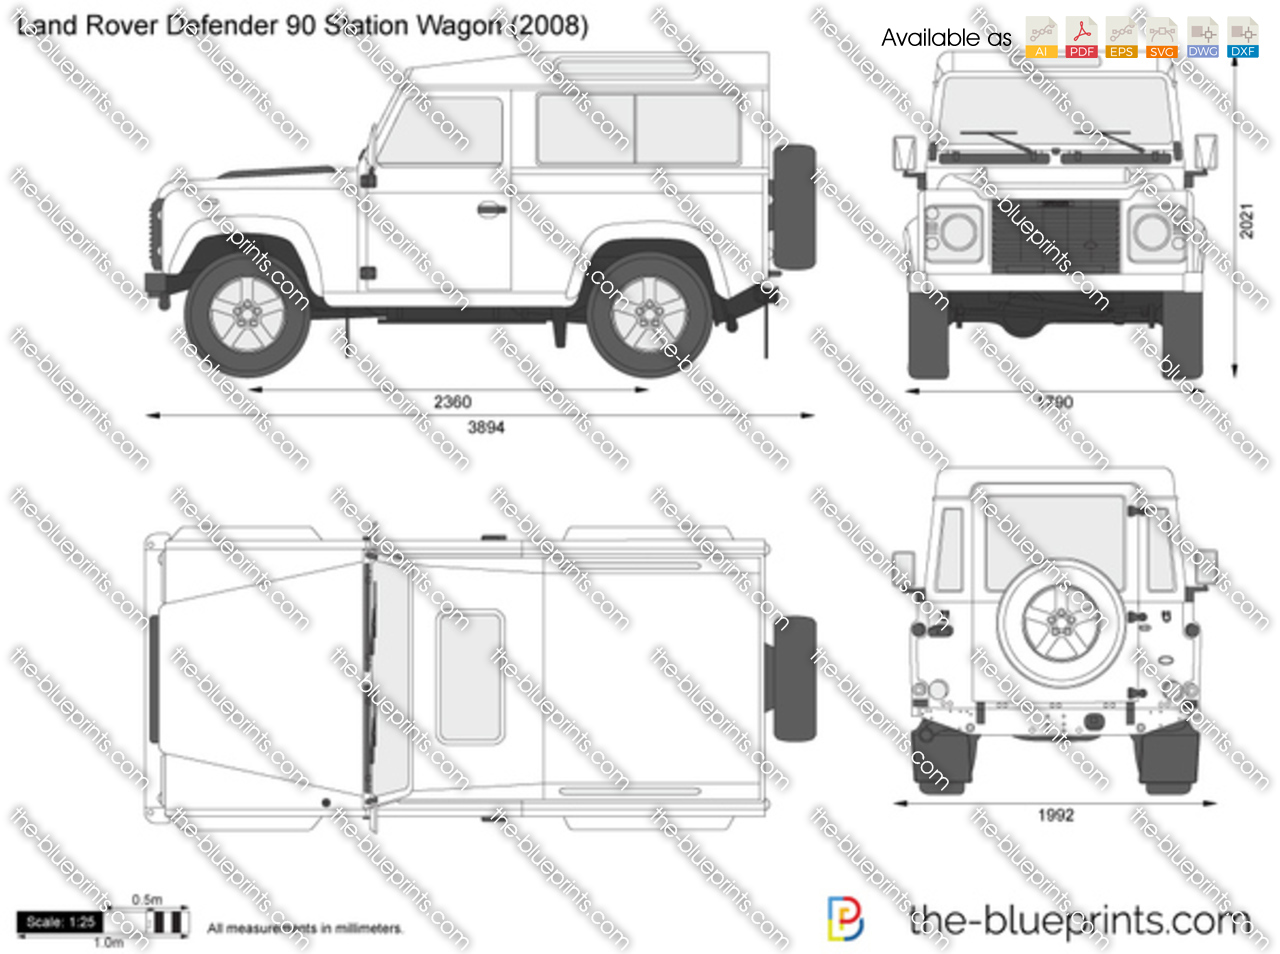 Land Rover Defender 90 Station Wagon 2002